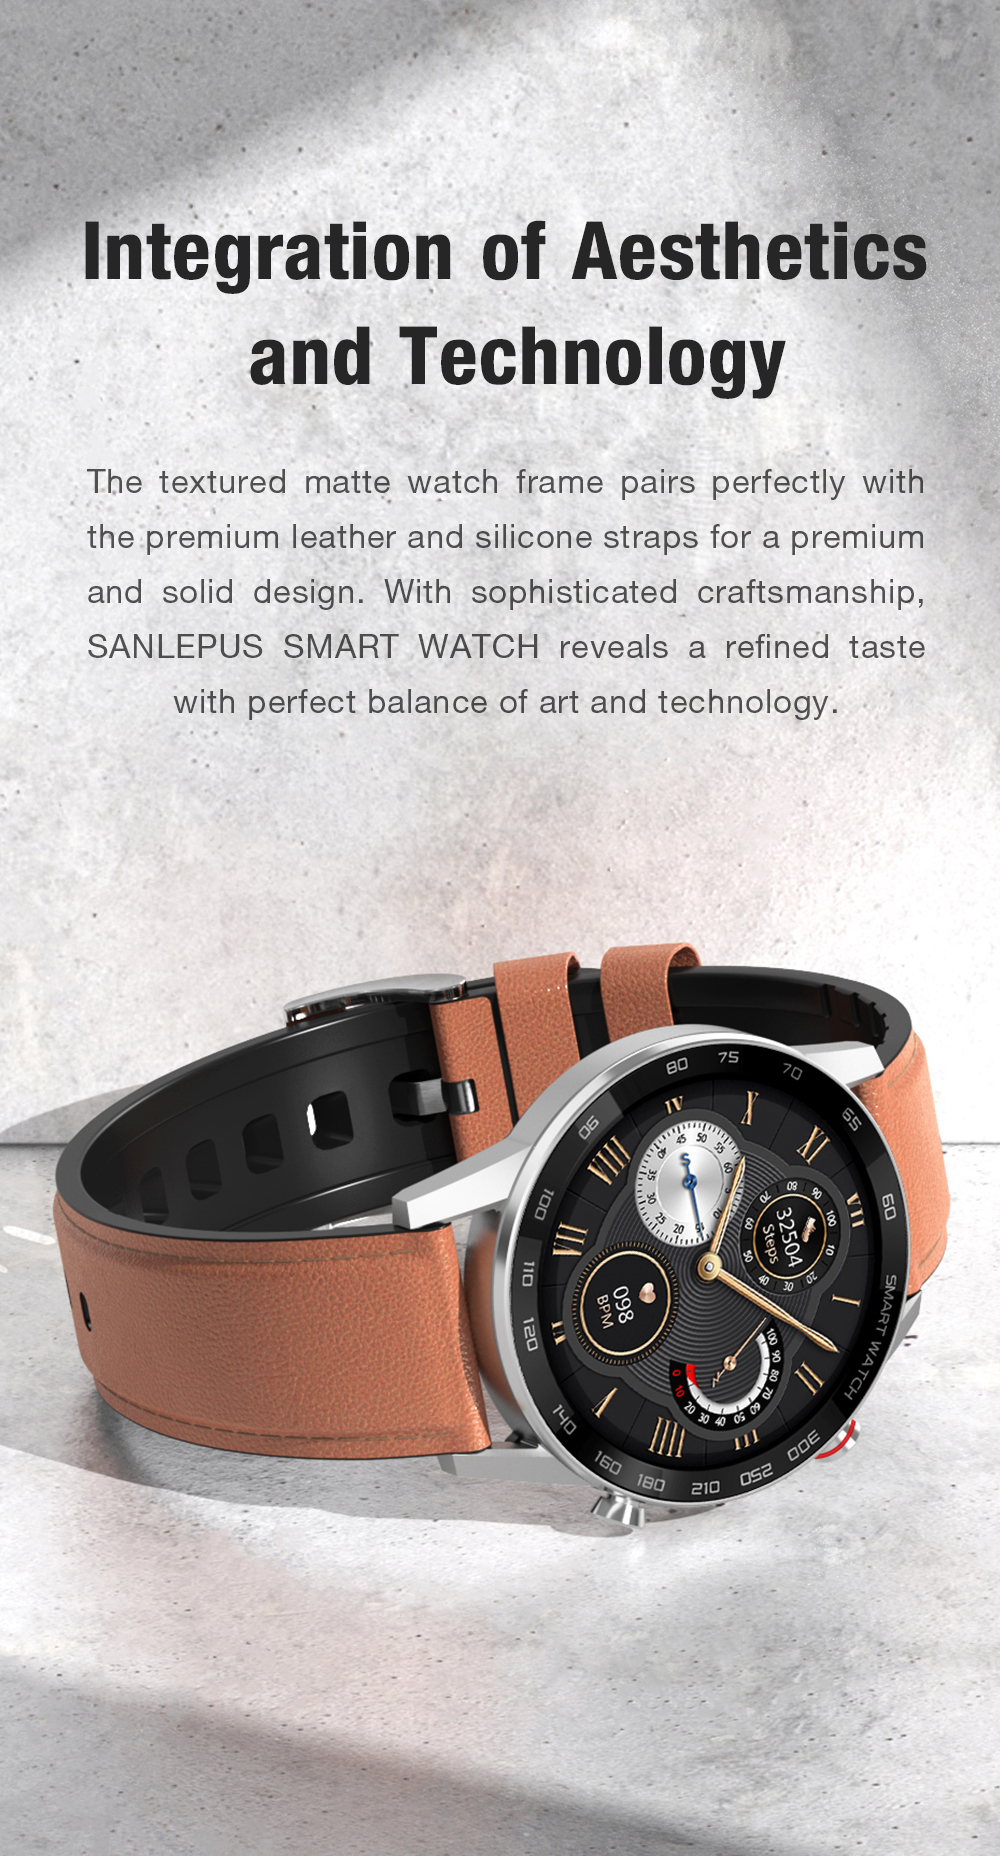 H04a6080614bf416982a11c96975ac483b 2021 SANLEPUS ECG Smart Watch Dial Call Smartwatch Men Sport Fitness Bracelet Clock Watches For Android Apple Xiaomi